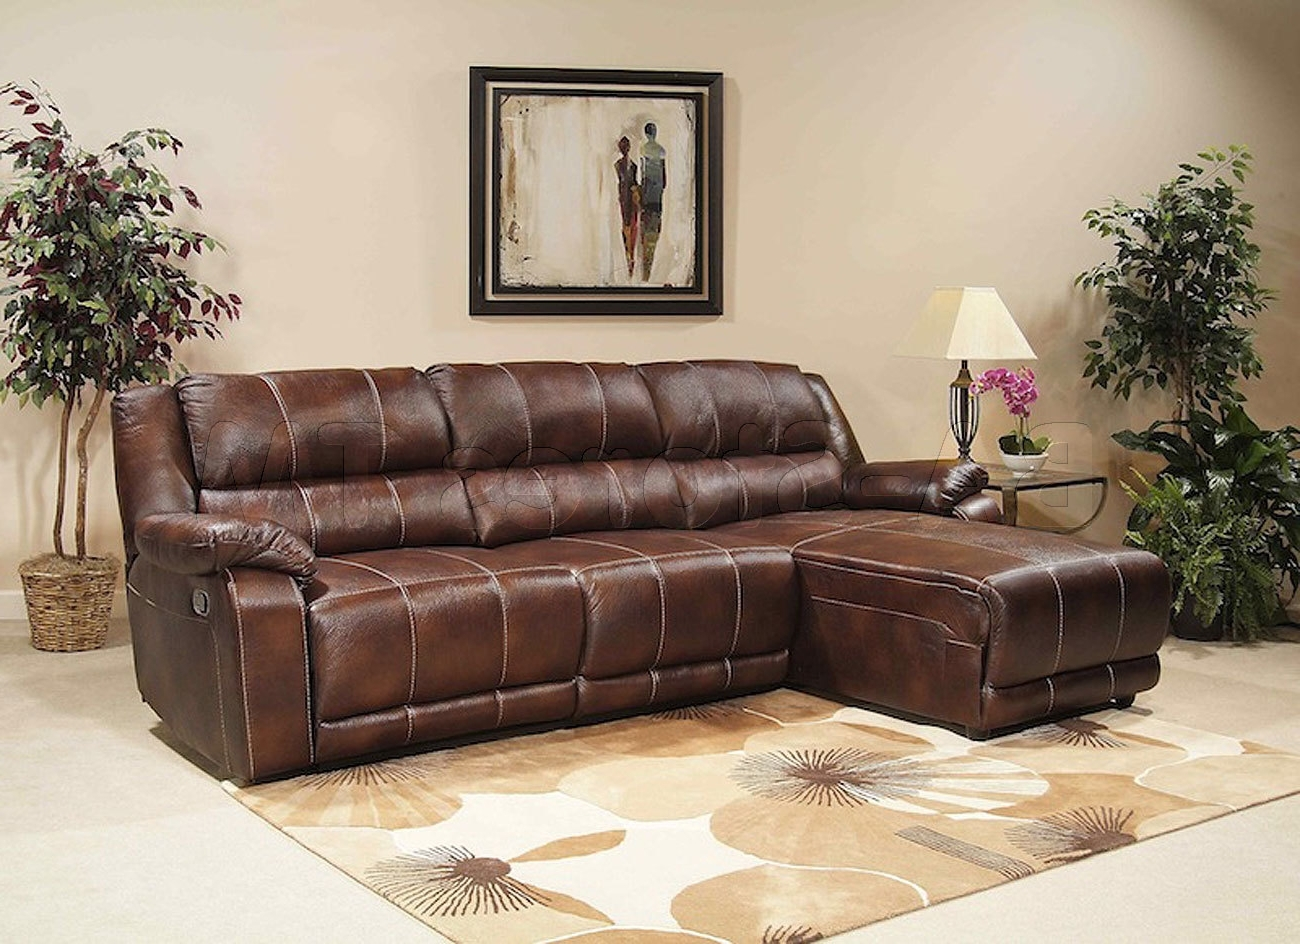 Trendy Reclining Chaises With Sectional Sofa Design: Affordabale Sectional Reclining Sofa With (View 12 of 15)